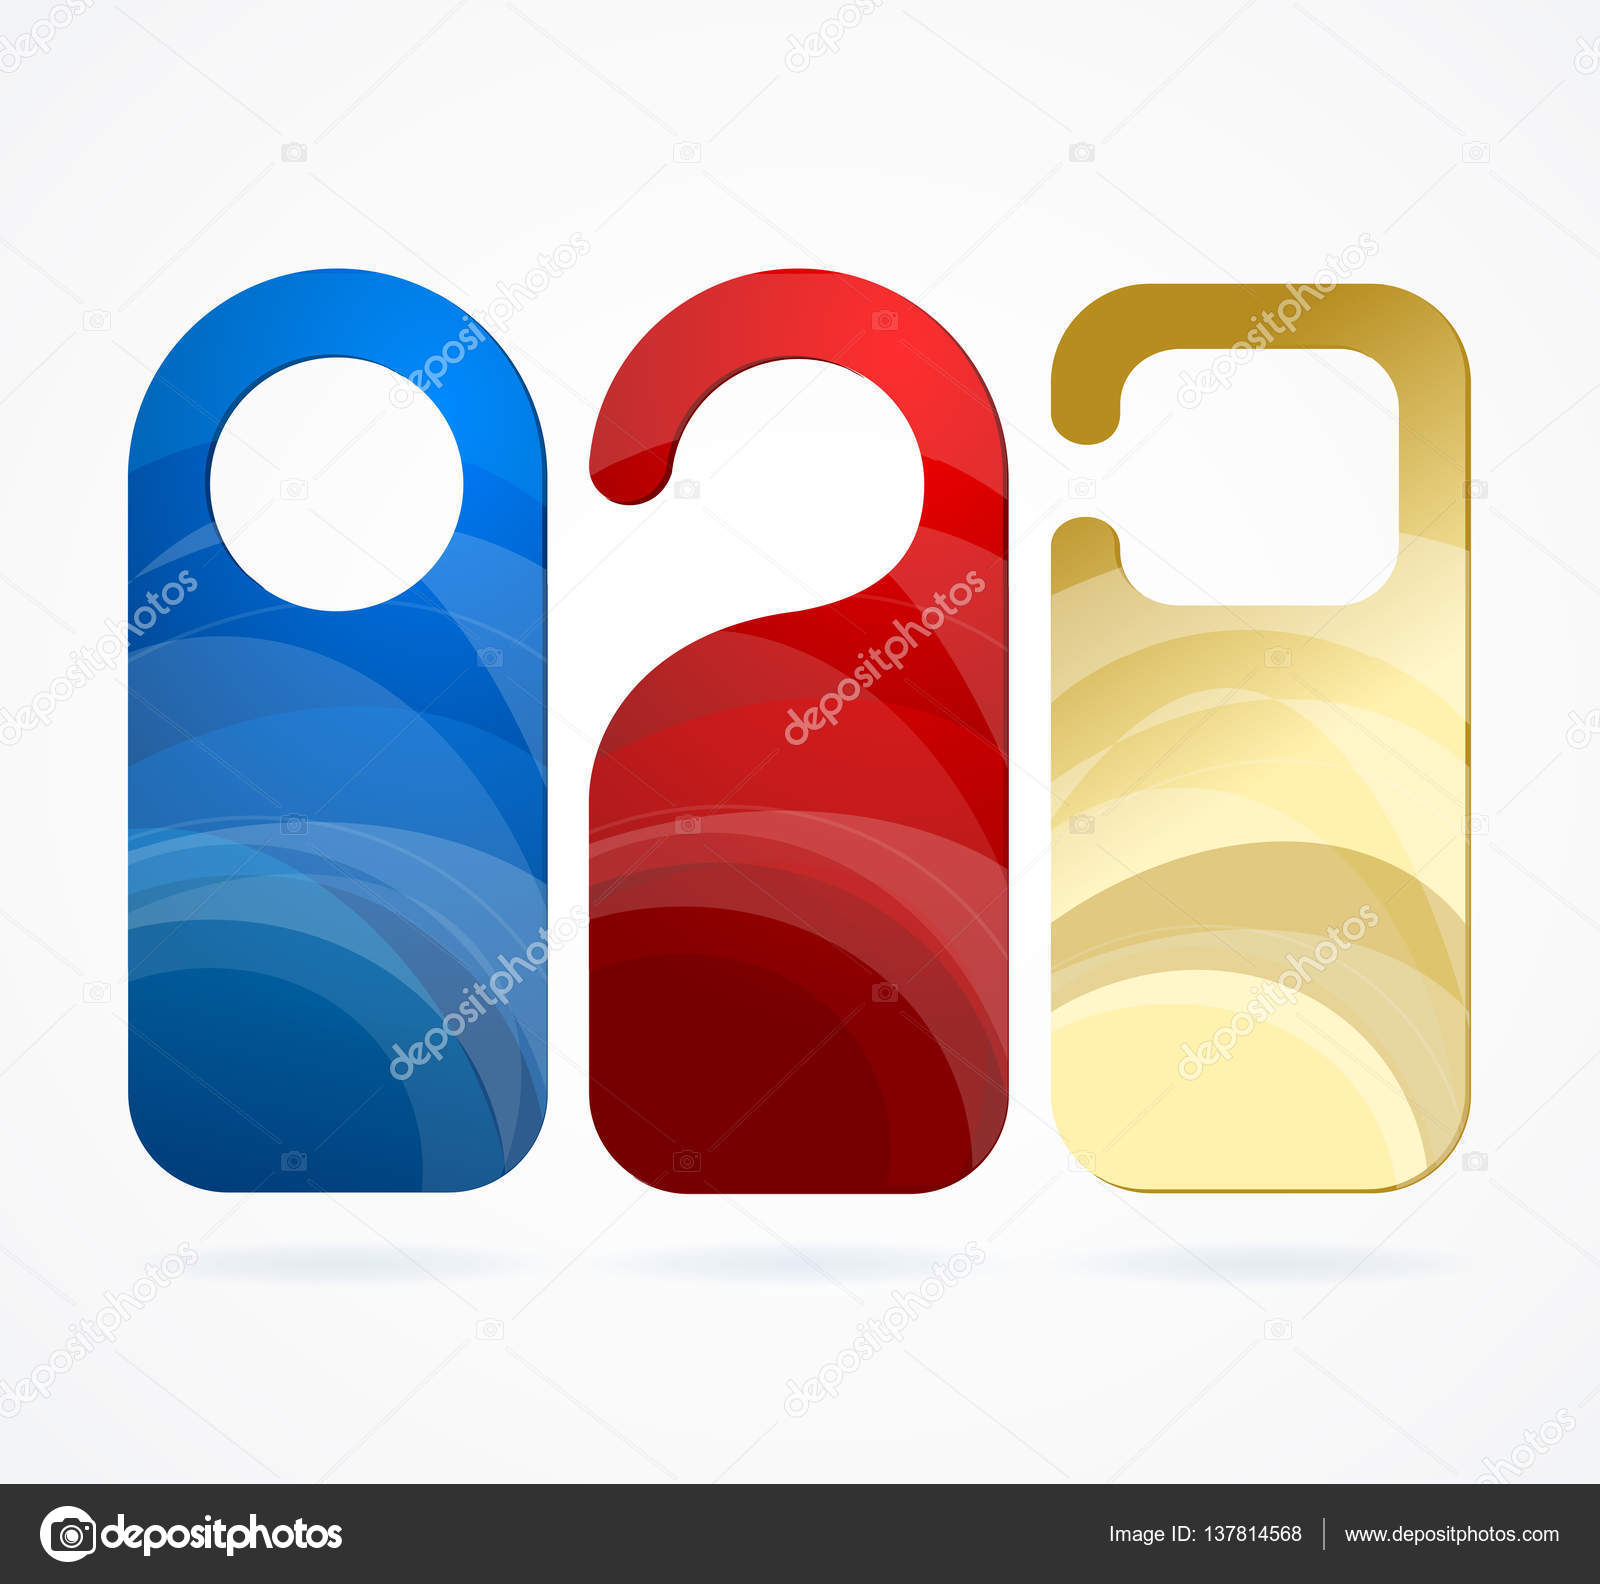 Color Template Blank Empty Hotel Door Labels Set with Abstract Pattern for Room. Vector illustration \u2014 Vector by mouse_md  sc 1 st  Depositphotos & Hotel Door Labels Set. Vector \u2014 Stock Vector © mouse_md #137814568